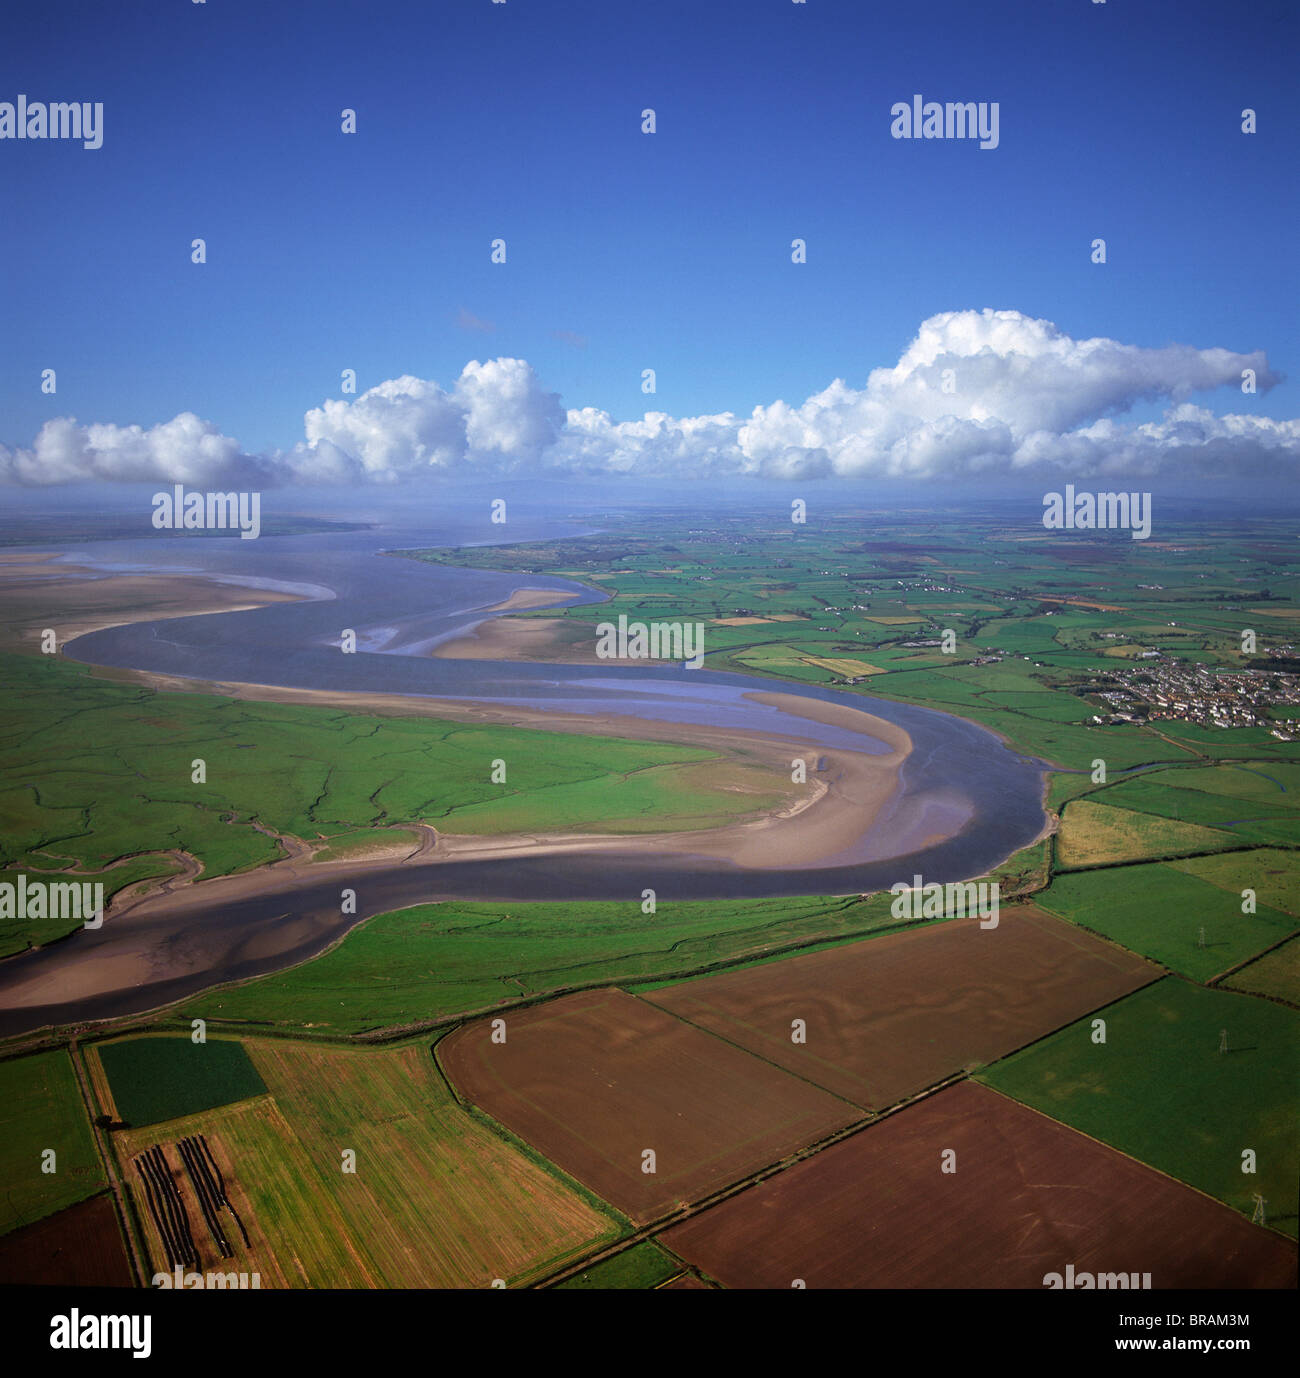 Aerial image of the River Esk flowing into Solway Firth, Scotland, UK - Stock Image